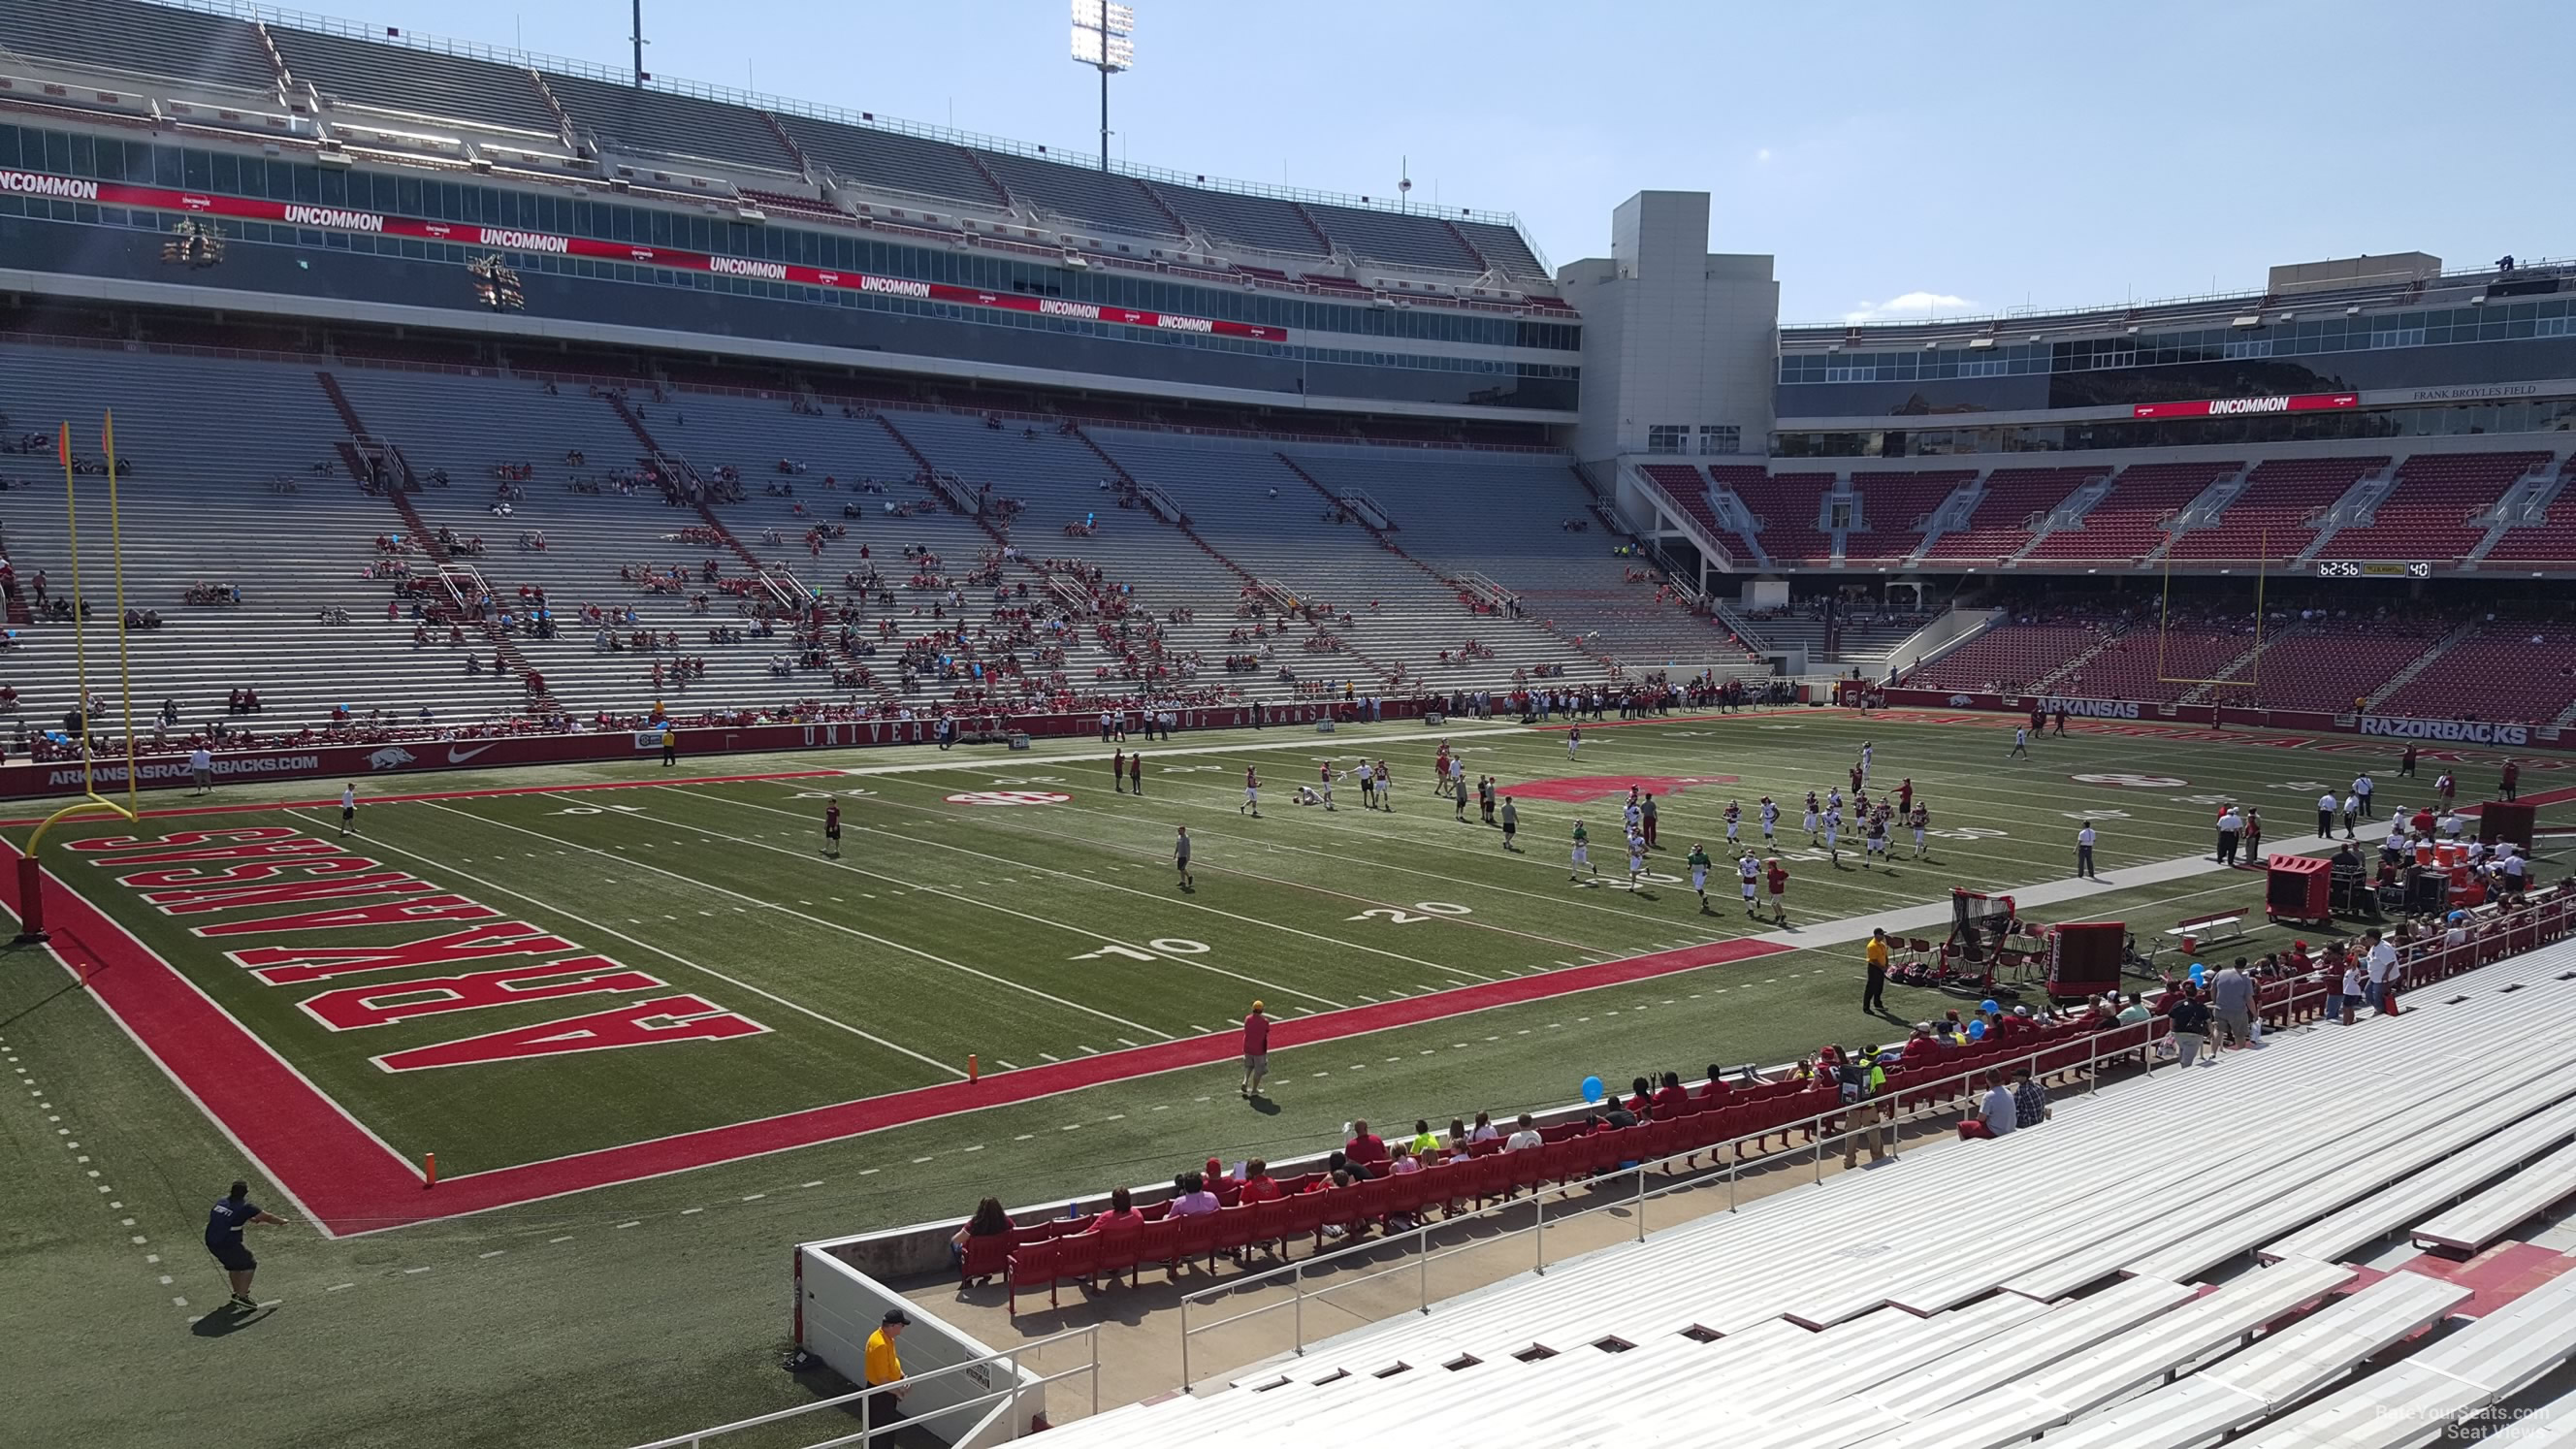 View from Section 107 Row 20 at Razorback Stadium